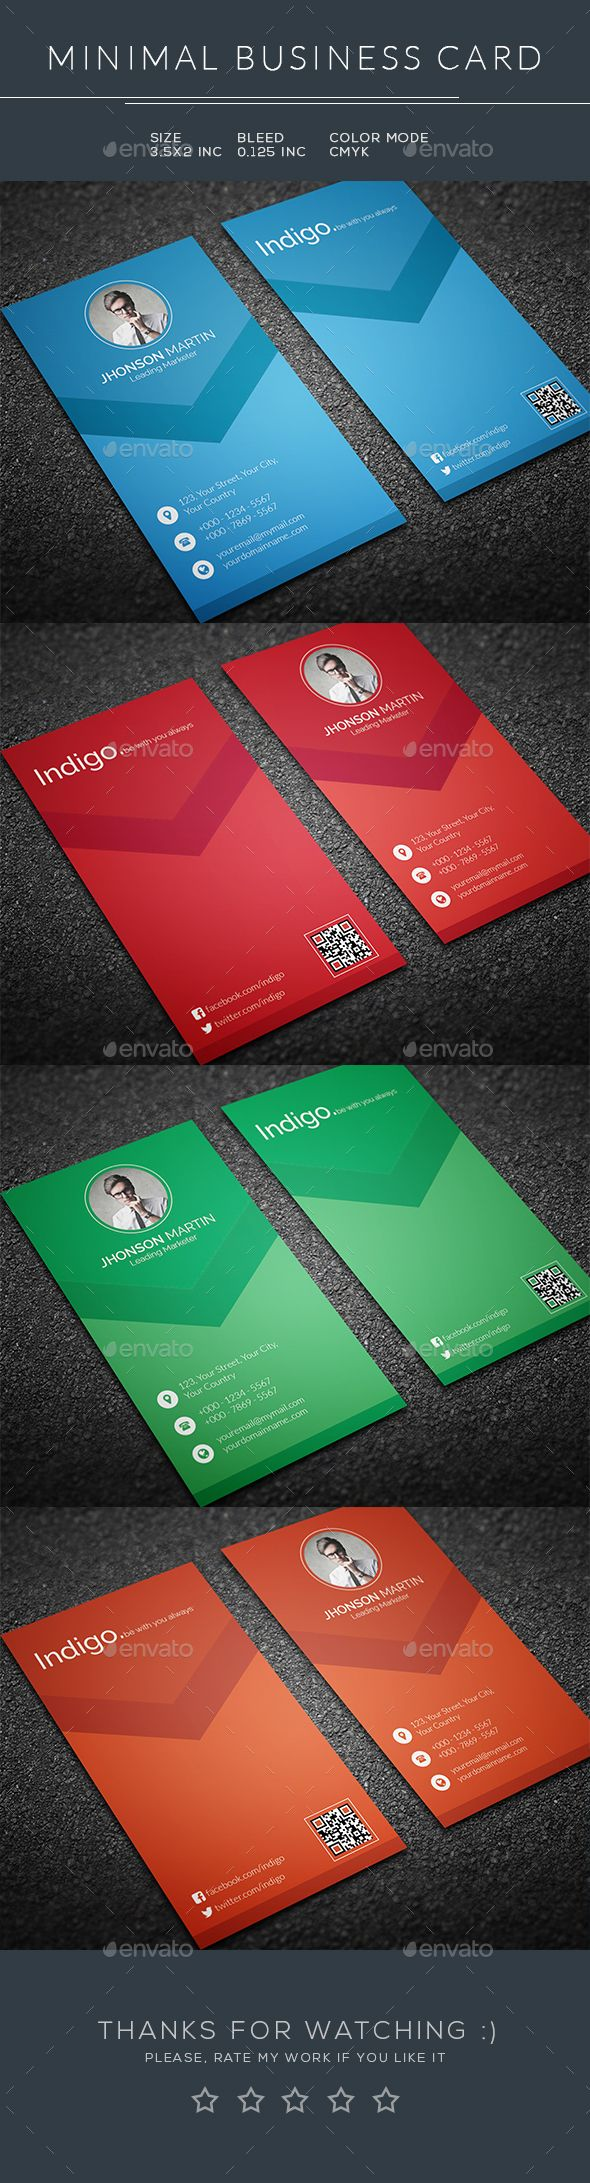 BusinessCards MX business cards maker Design and print